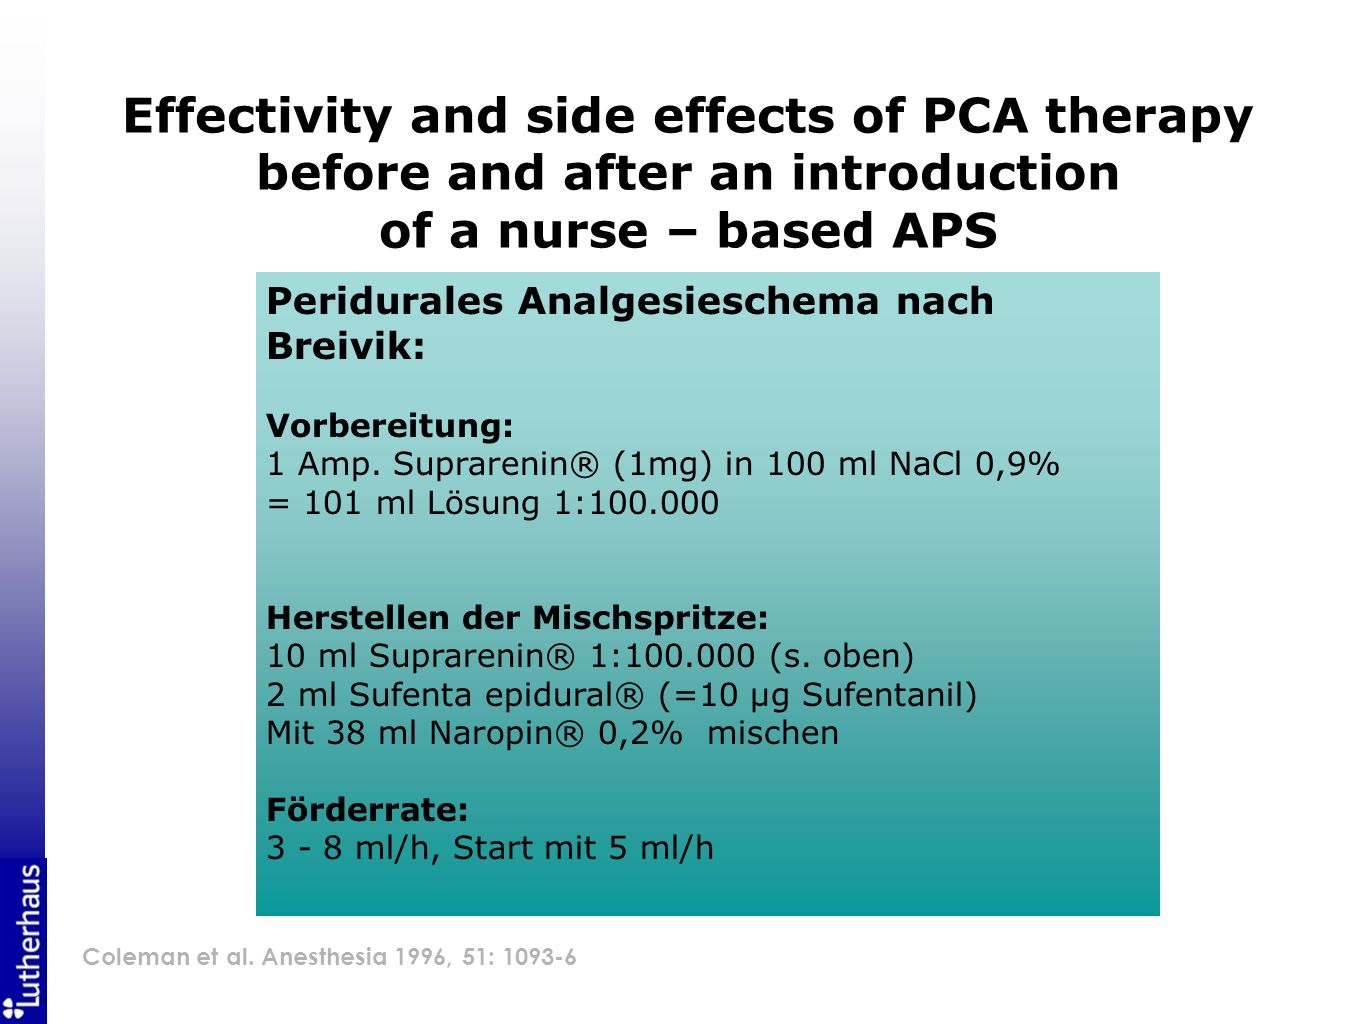 Effectivity and side effects of PCA therapy before and after an introduction of a nurse – based APS